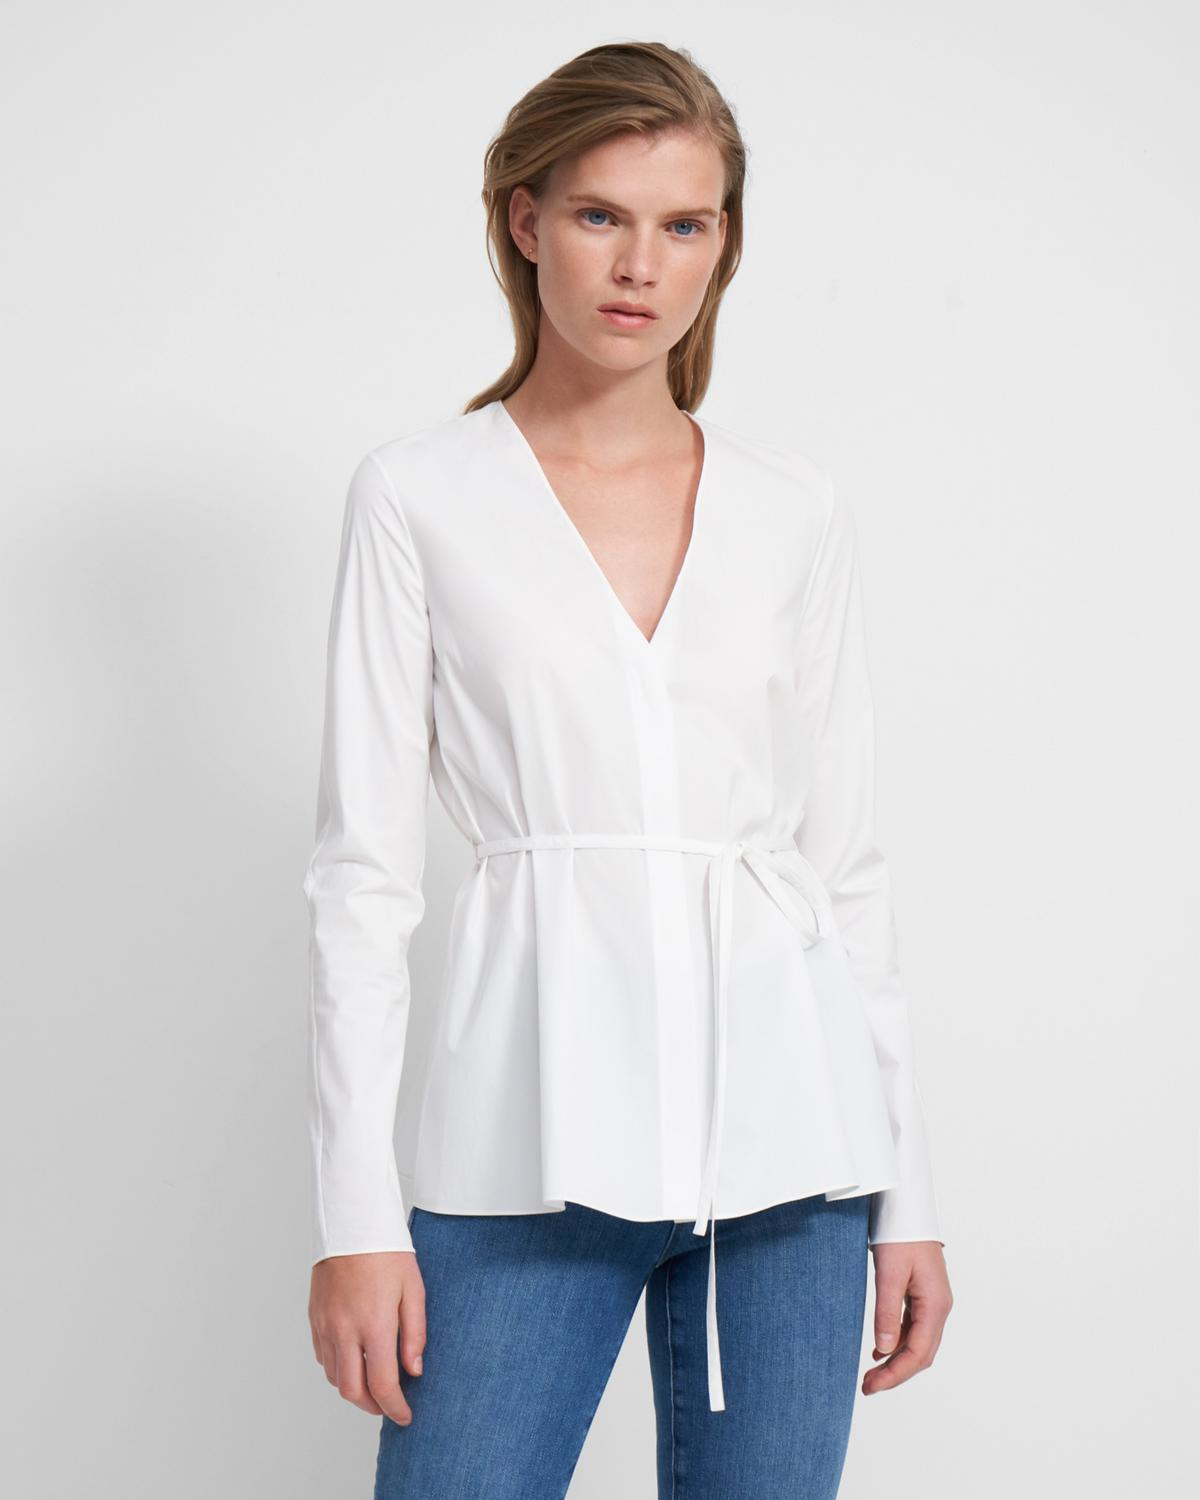 V NECK TIE TOP